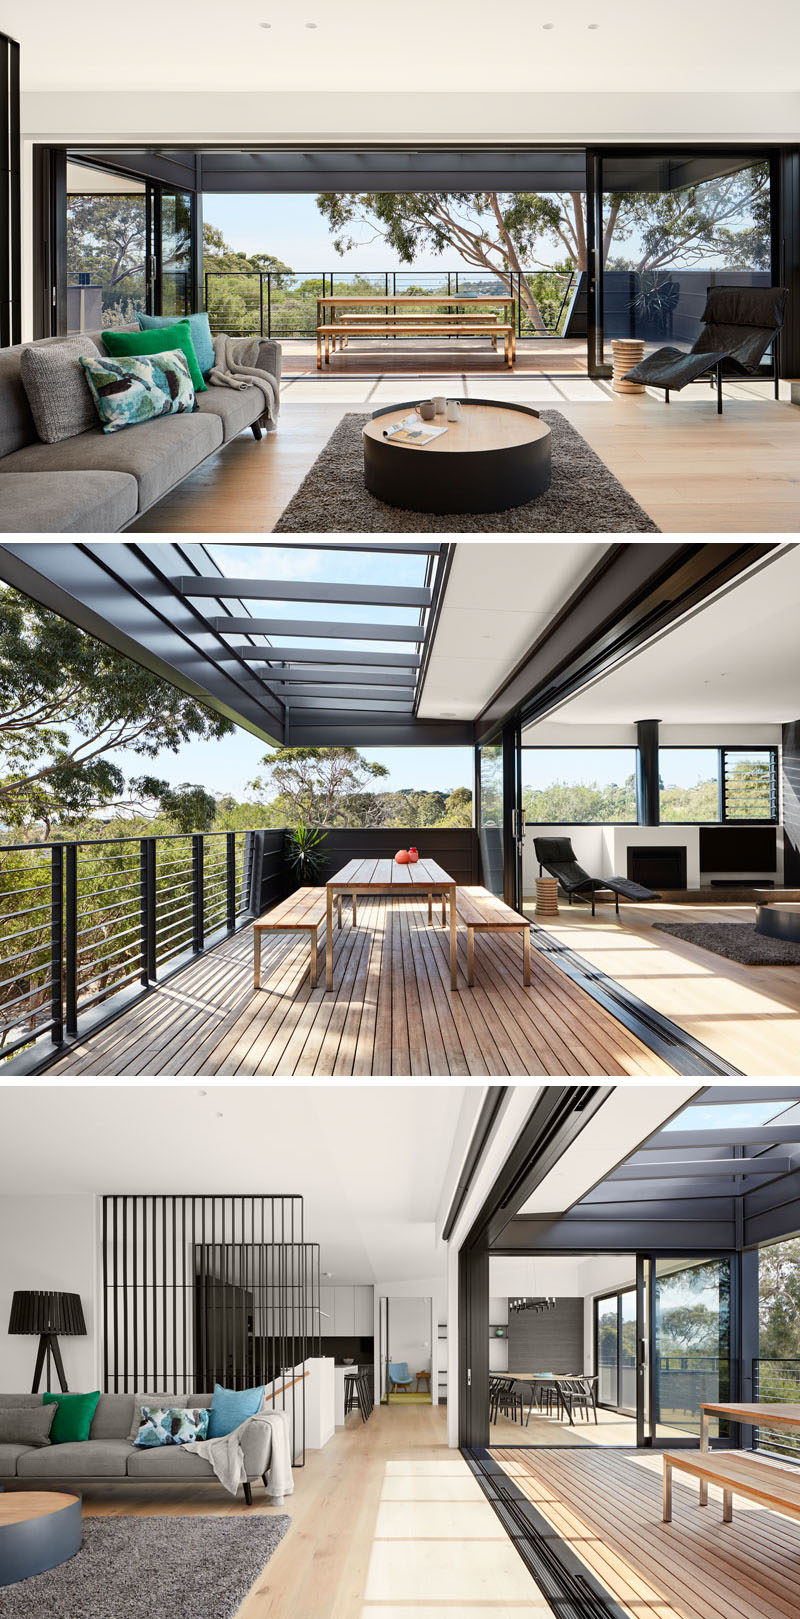 This modern living room has large sliding glass doors that open the space up to the balcony for an indoor / outdoor living experience. #LivingRoom #Balcony #OutdoorDining #ModernInteriorDesign